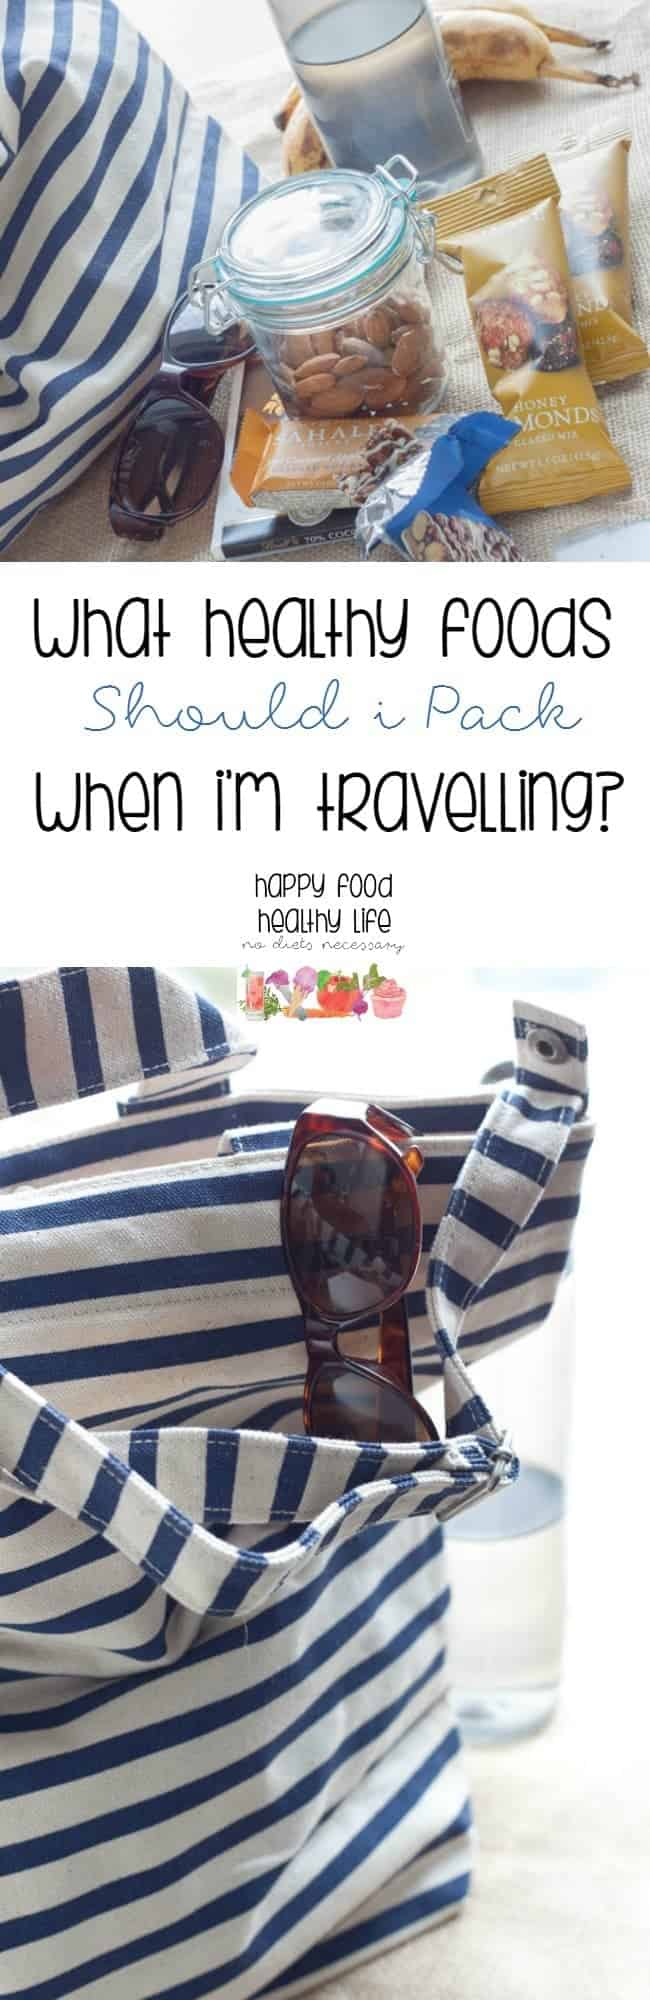 What Healthy Foods Should I Pack When I'm Travelling? This gives some great tips for snacks to take to the airport and in your travels when you won't have access to a kitchen.